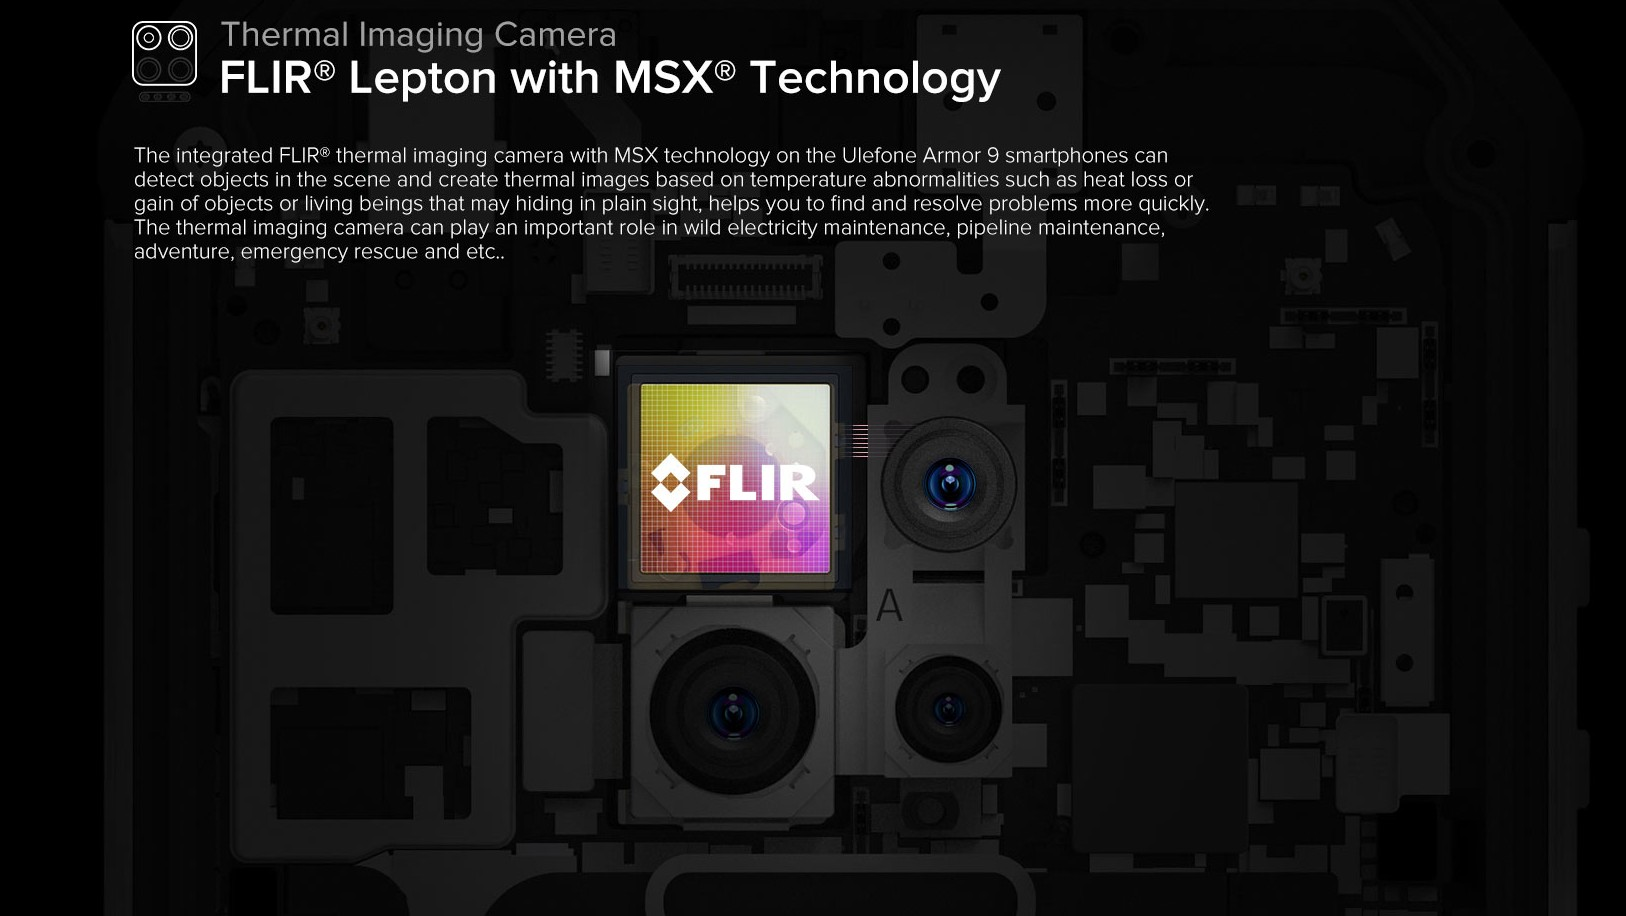 Ulefone Armor 9 - FLIR Thermal Imaging Camera